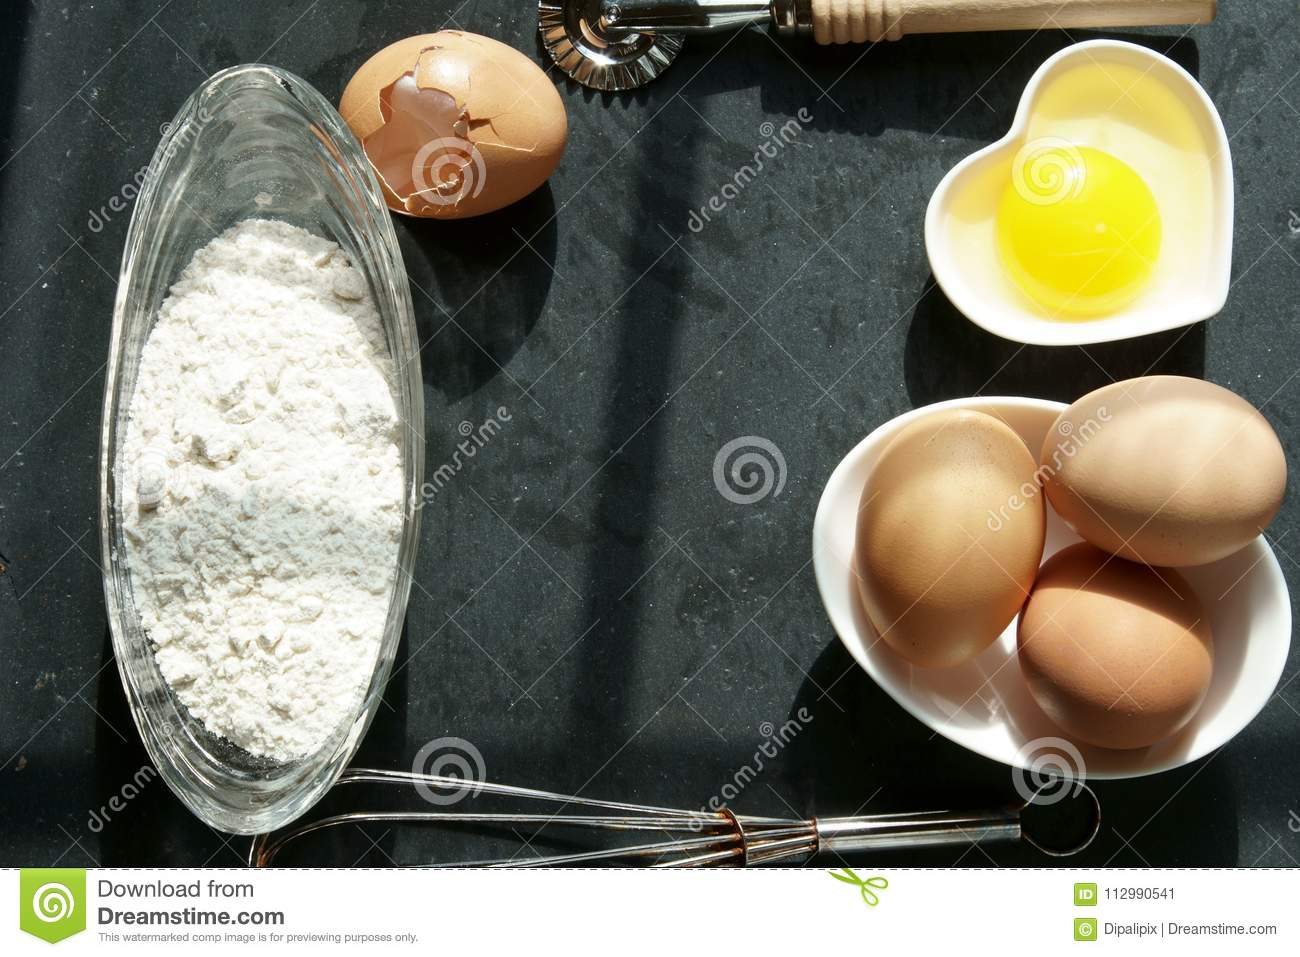 Brown eggs on a napkin.